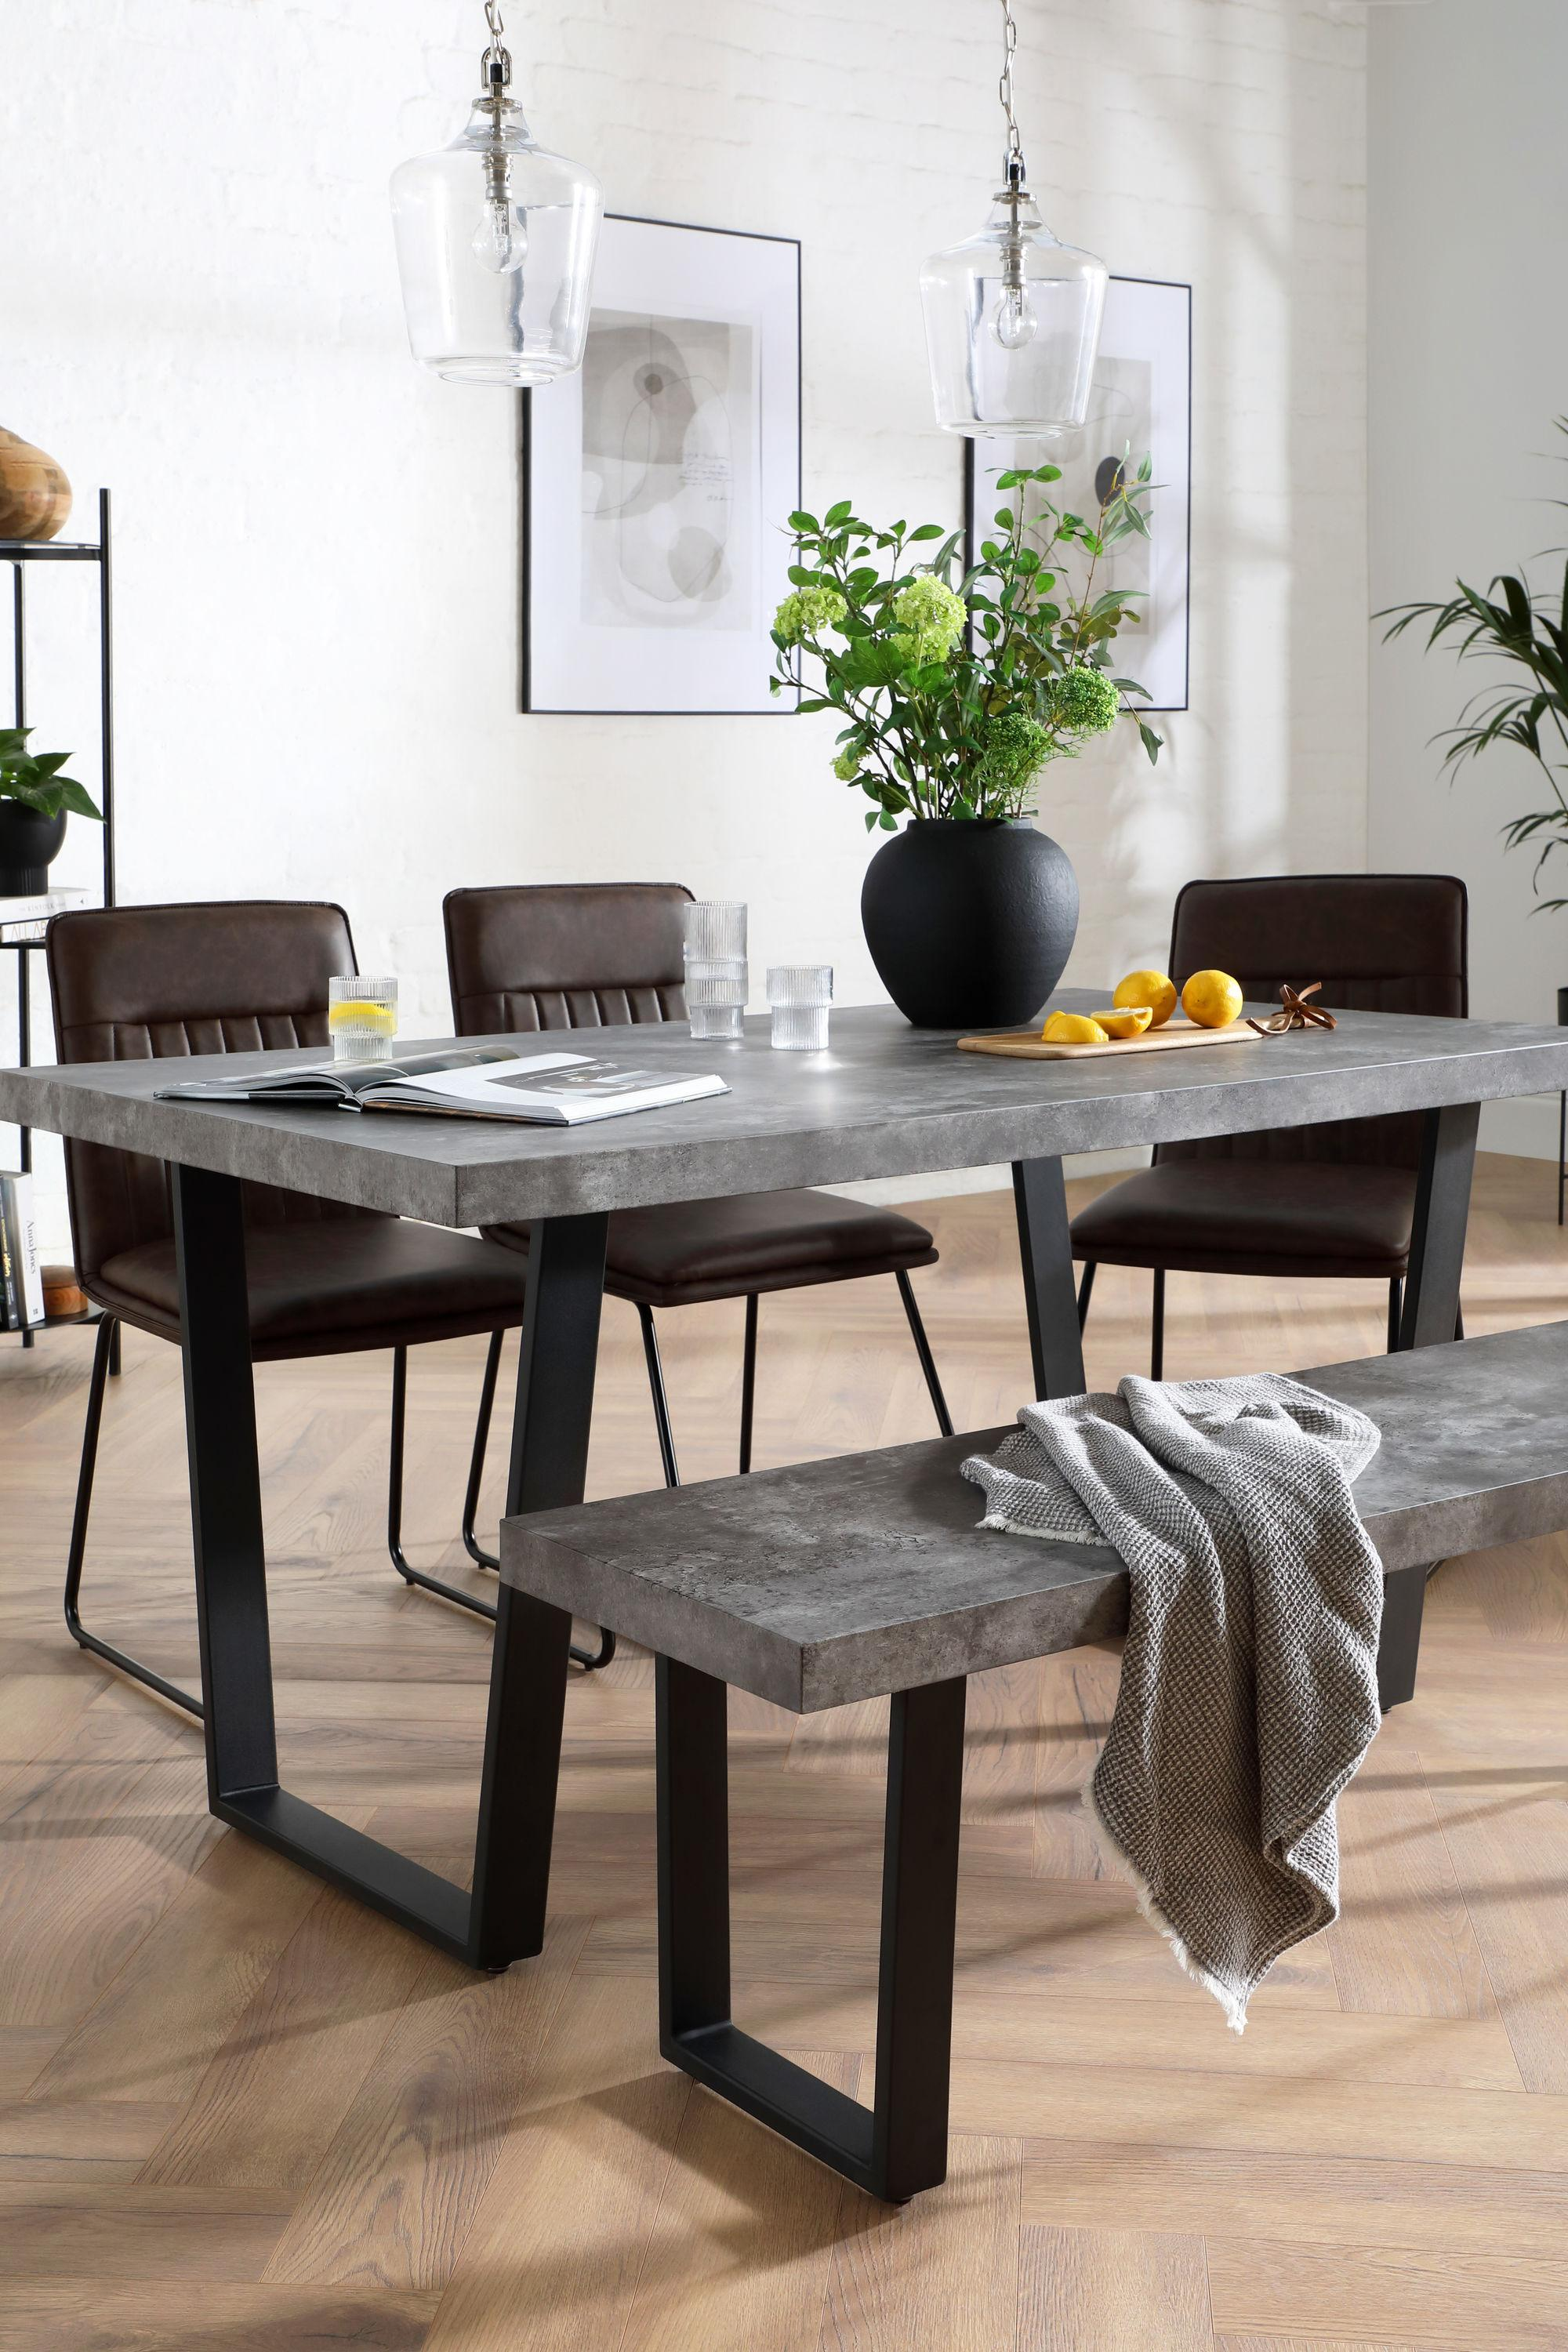 Industrial dining set with concrete table and leather chairs